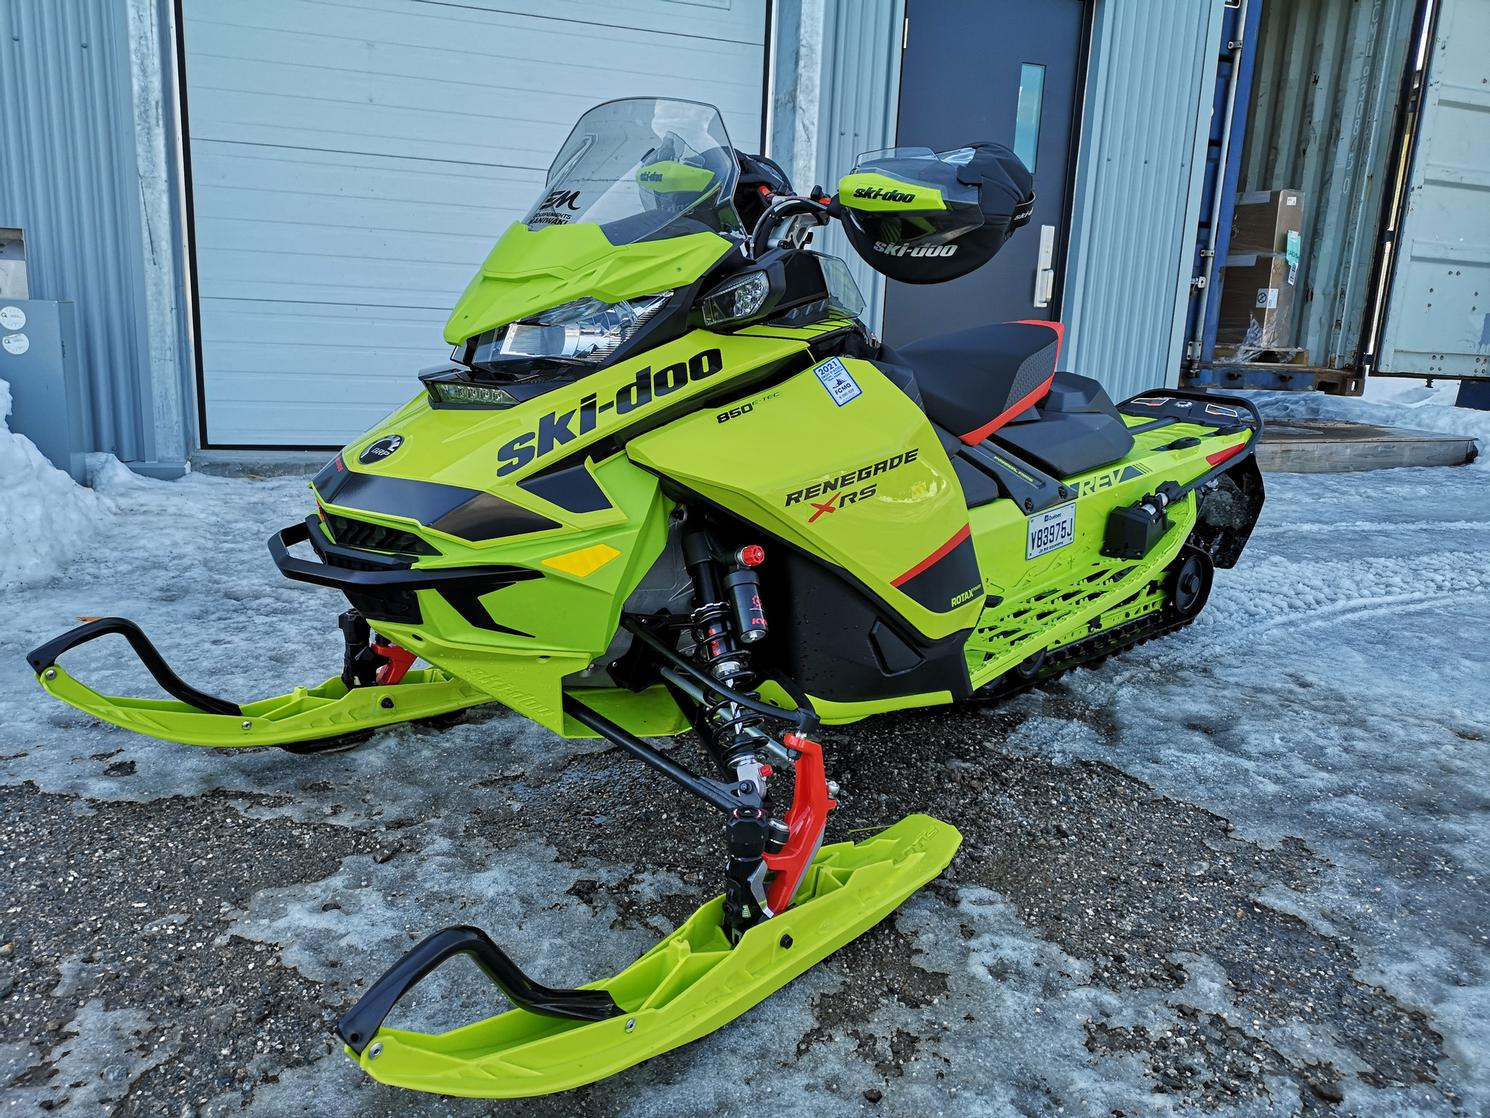 Ski-Doo Renegade XRS 850 etec - Quick ajust package 2020